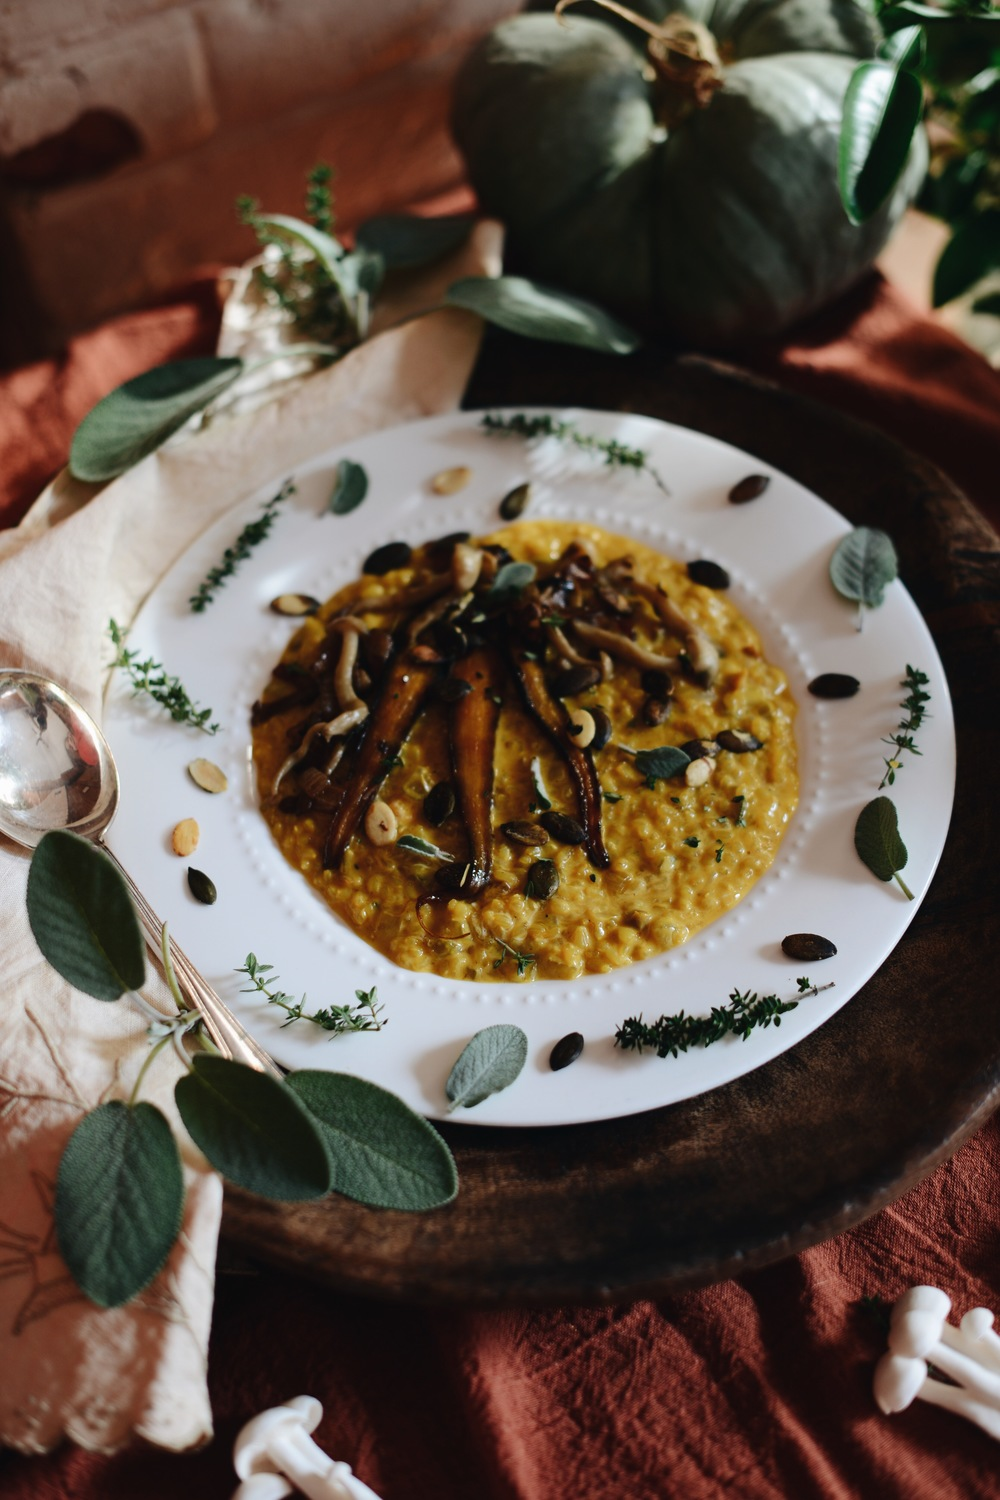 Fare Isle | Pumpkin Sweet Brown Risotto with Maple Glazed Carrots & Wild Mushrooms - Vegan & Gluten Free - Thanksgiving Recipes